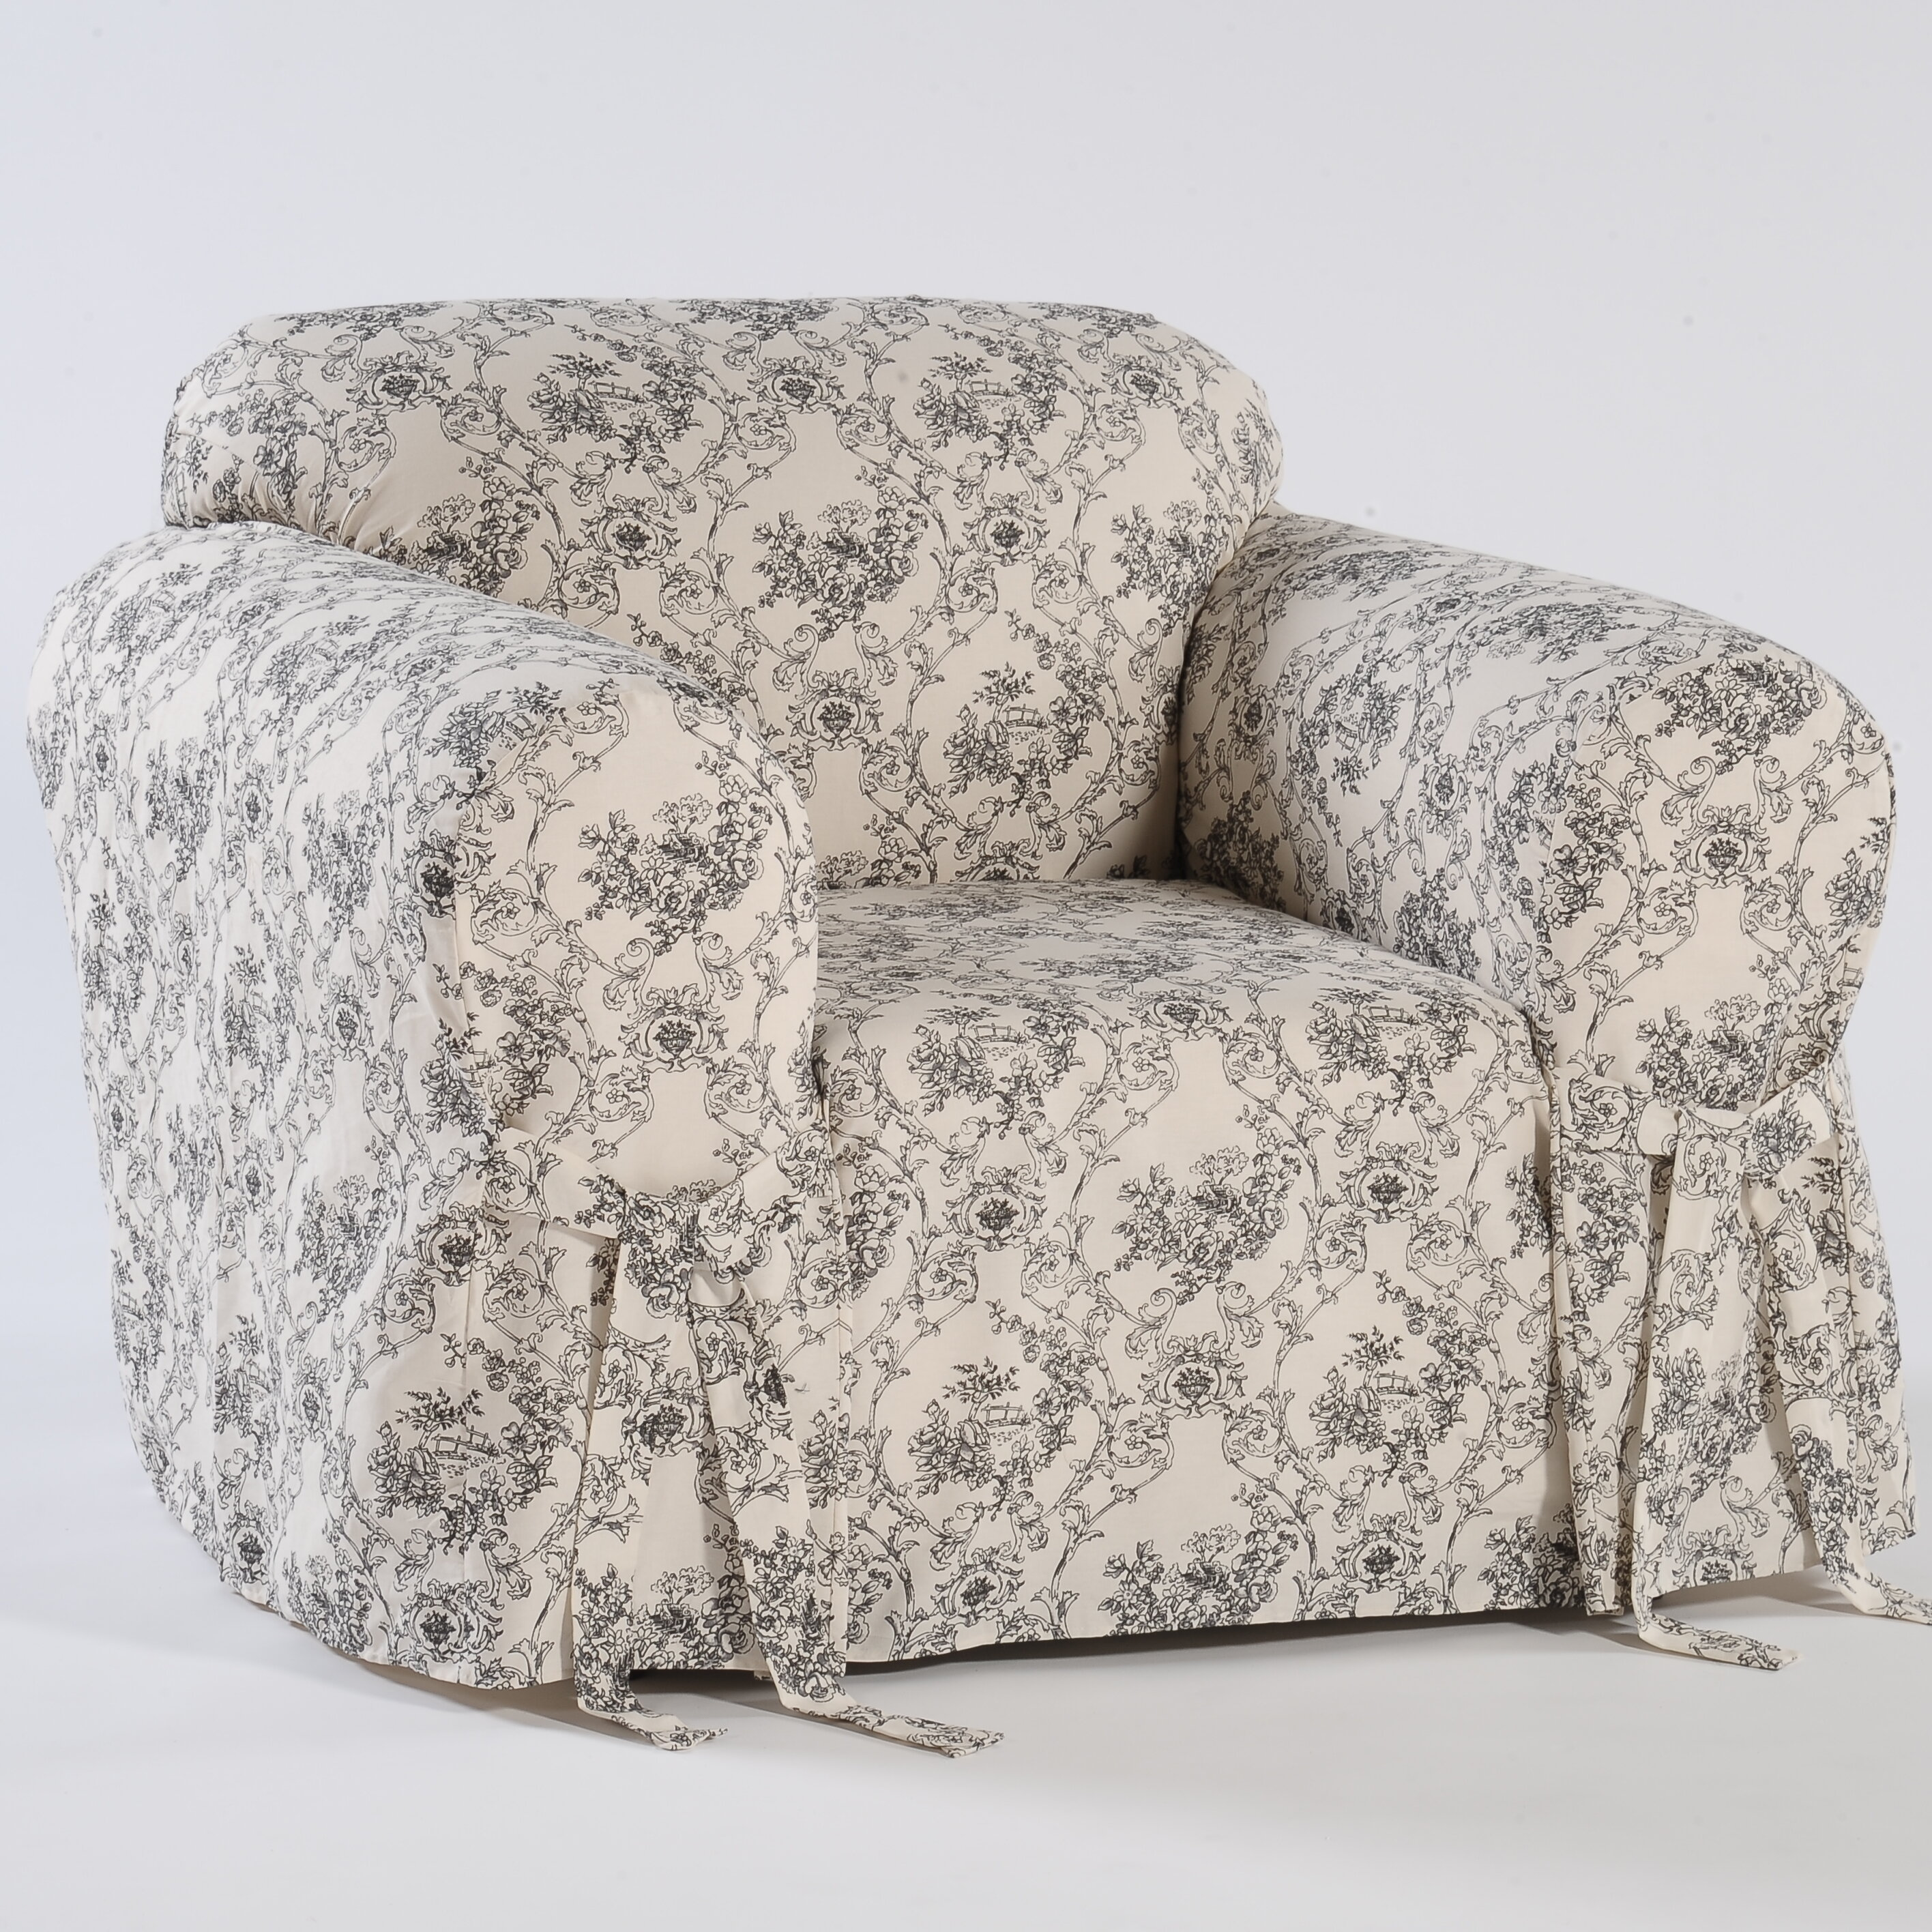 Classic Slipcovers Toile Print Box Cushion Armchair Slipcover U0026 Reviews |  Wayfair